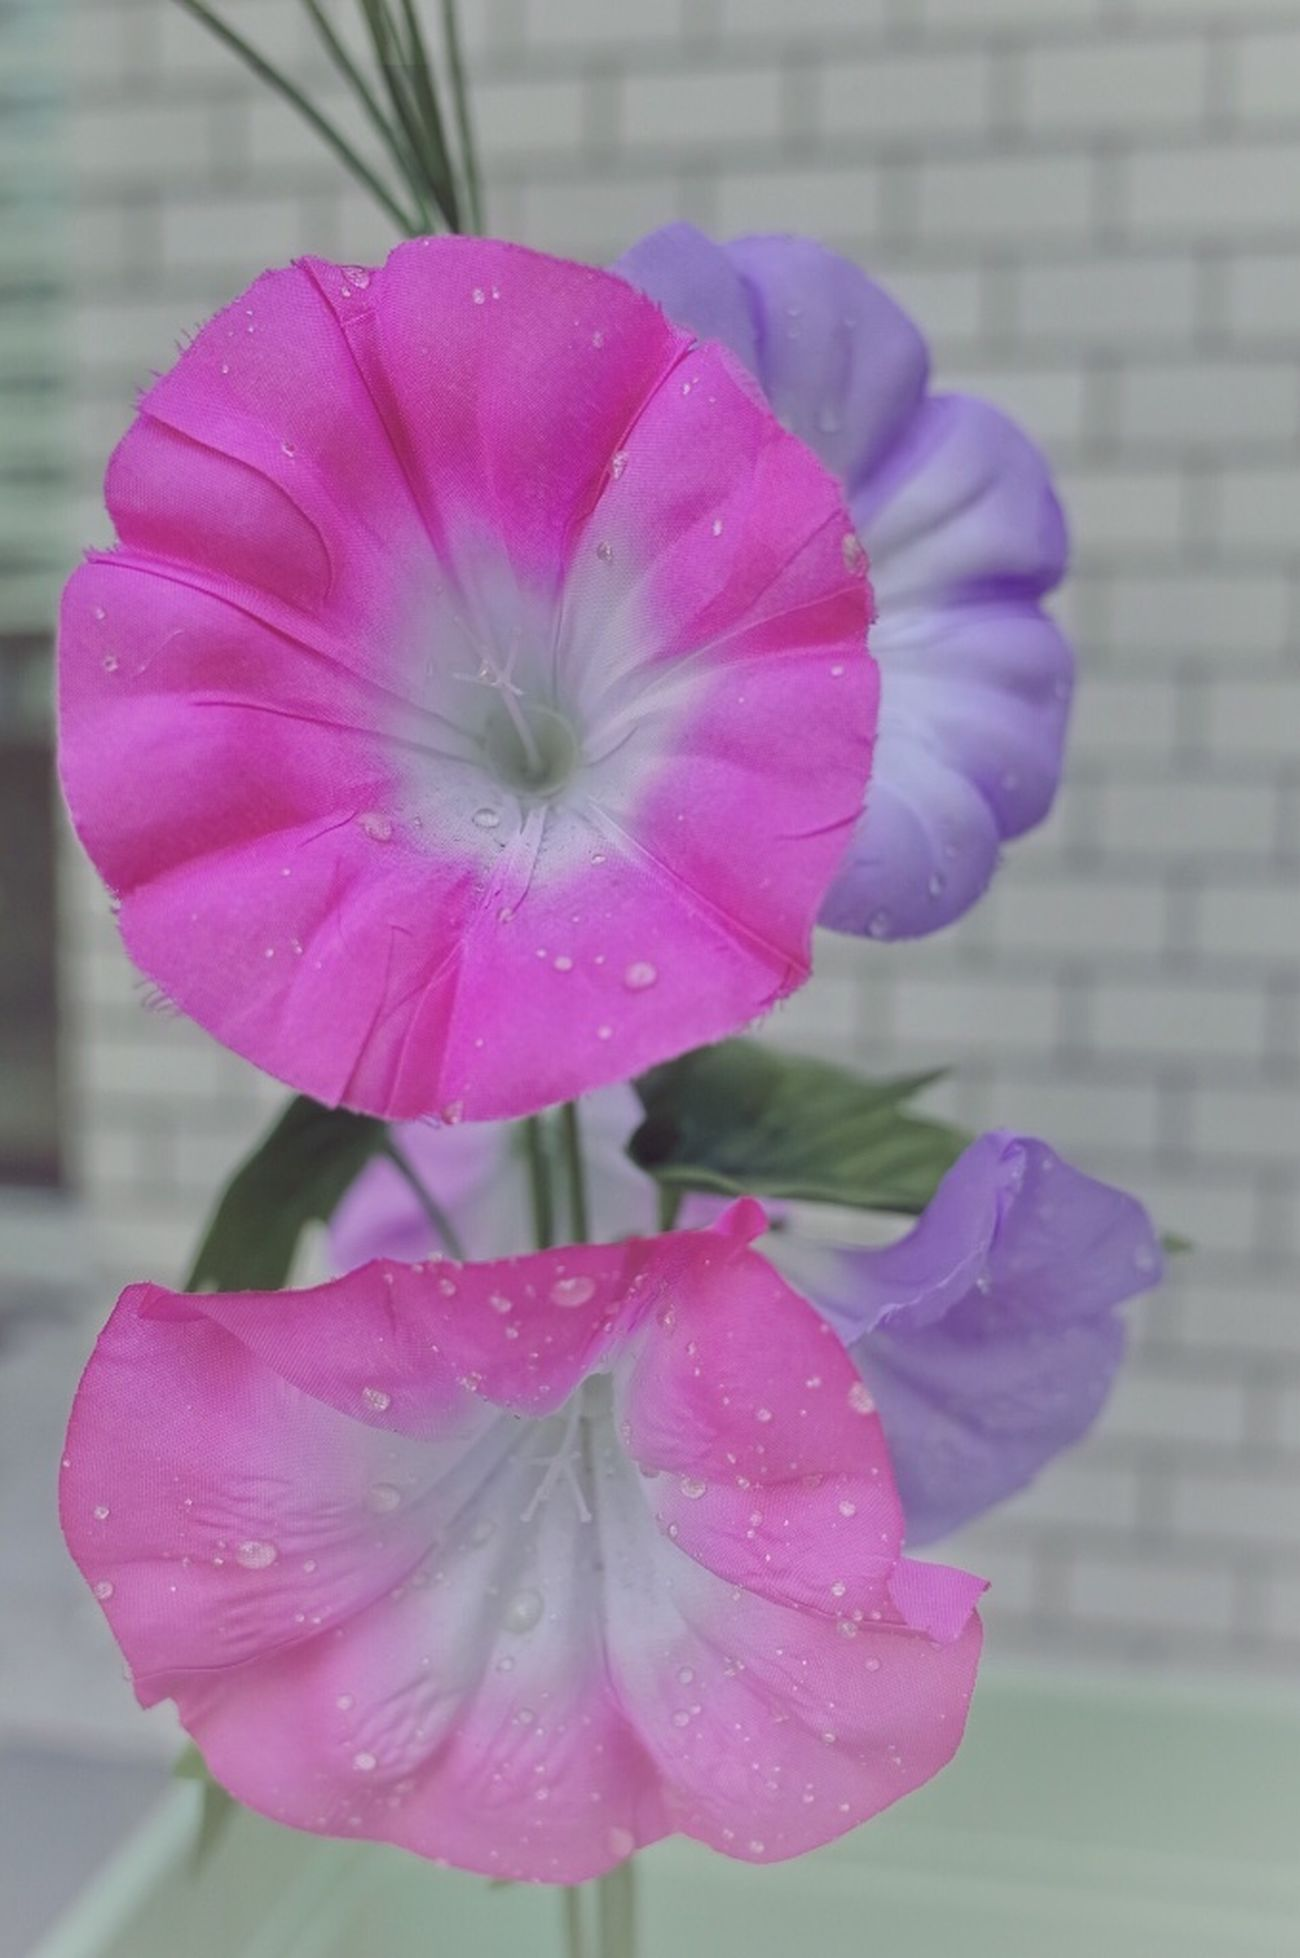 Morning Glory Good Morning! Toranomon Nature A Day Of Tokyo Still Life Capture The Moment Found On The Roll Taking Photos EyeEm Gallery Japan Tokyo Somewhere Urban Landscape Battle Of The Cities Streetphotography EyeEm Nature Lover Flowers, Nature And Beauty Natural Beauty Flowers Atmospheric Mood Nature Photography Urban Nature Waterdrops Nature On Your Doorstep Flowers,Plants & Garden